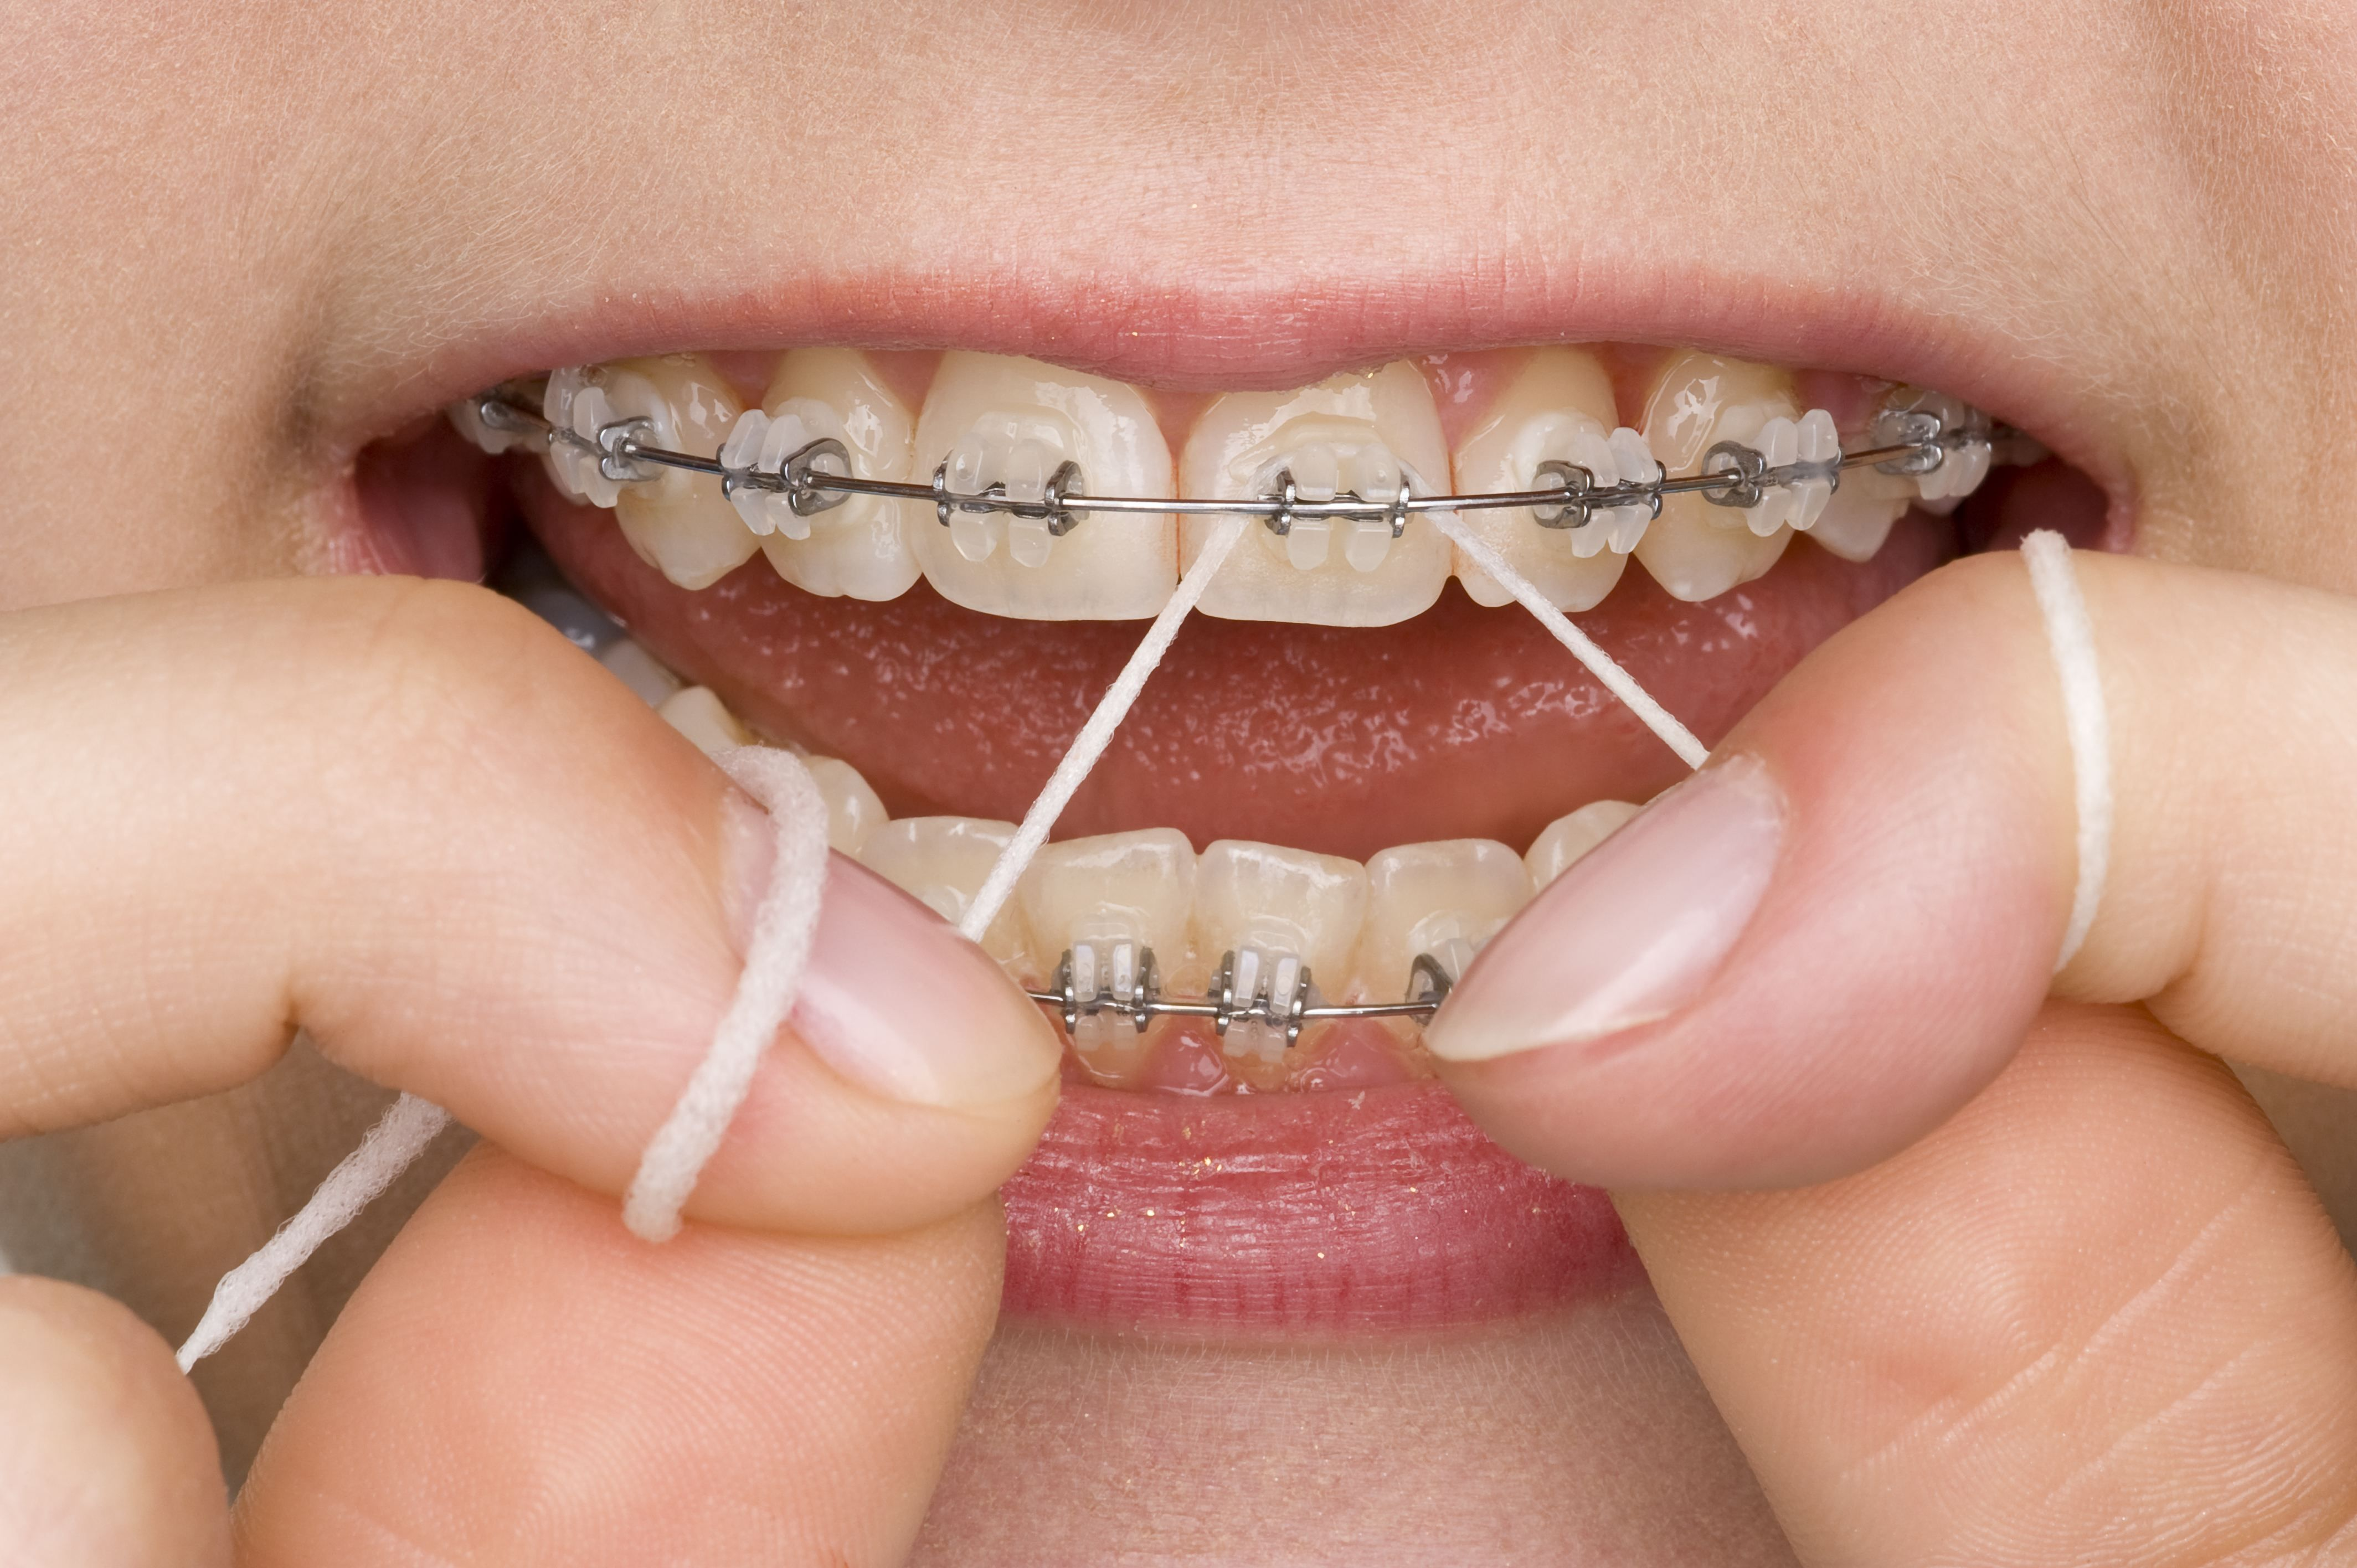 Brushing and flossing with braces is a challenge and you